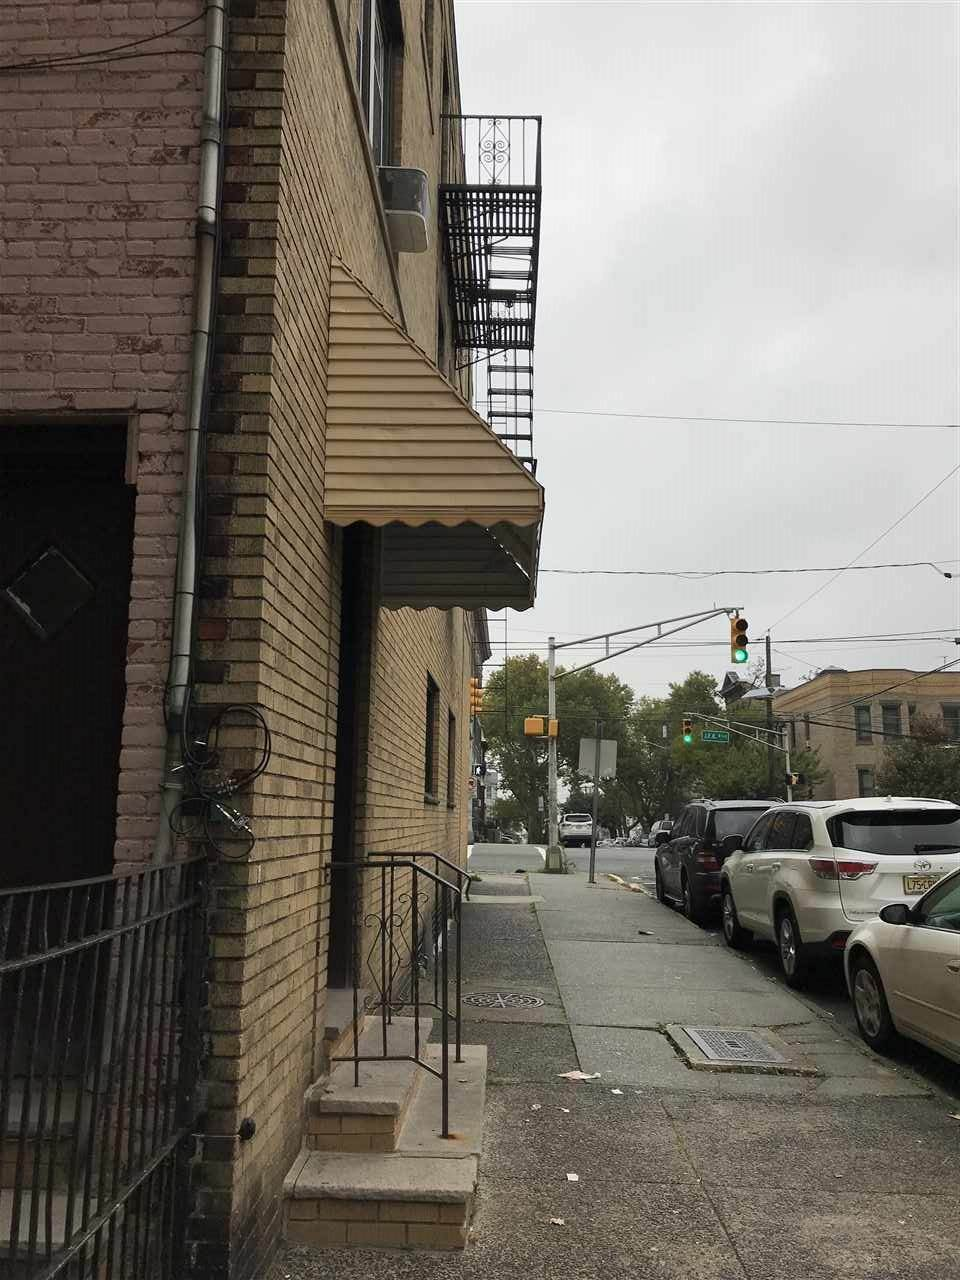 Apartments / Flats for Rent at 57 HAGUE STREET #4 Jersey City, New Jersey, 07307 United States